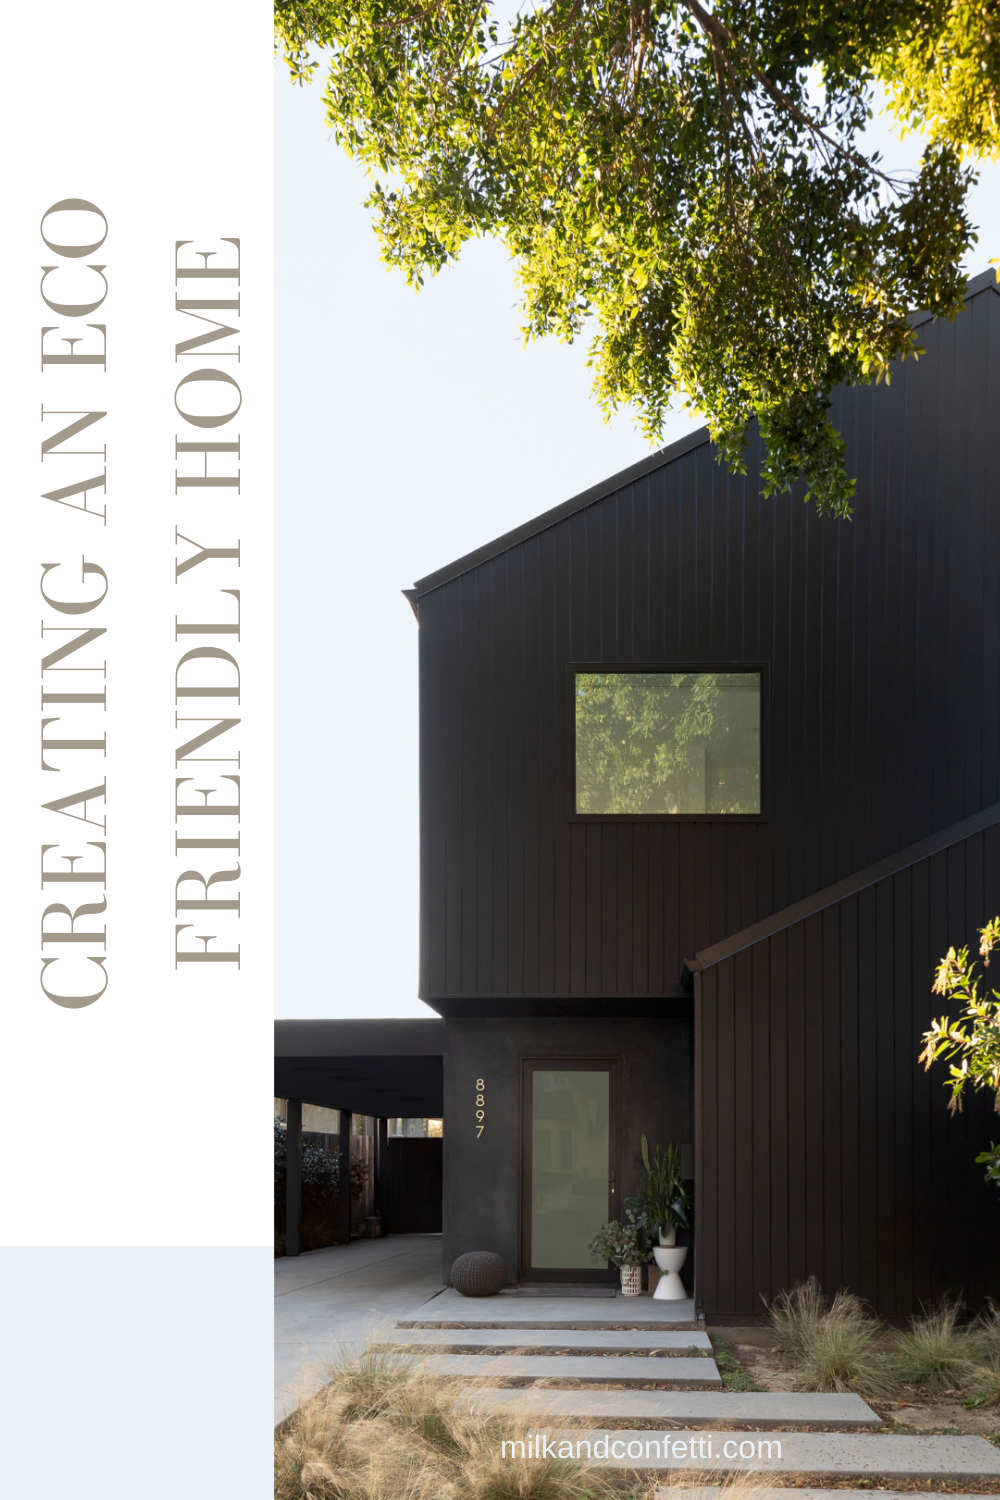 A modern minimal home with a black exterior with a modern concrete slab sidewalk and tall trees.